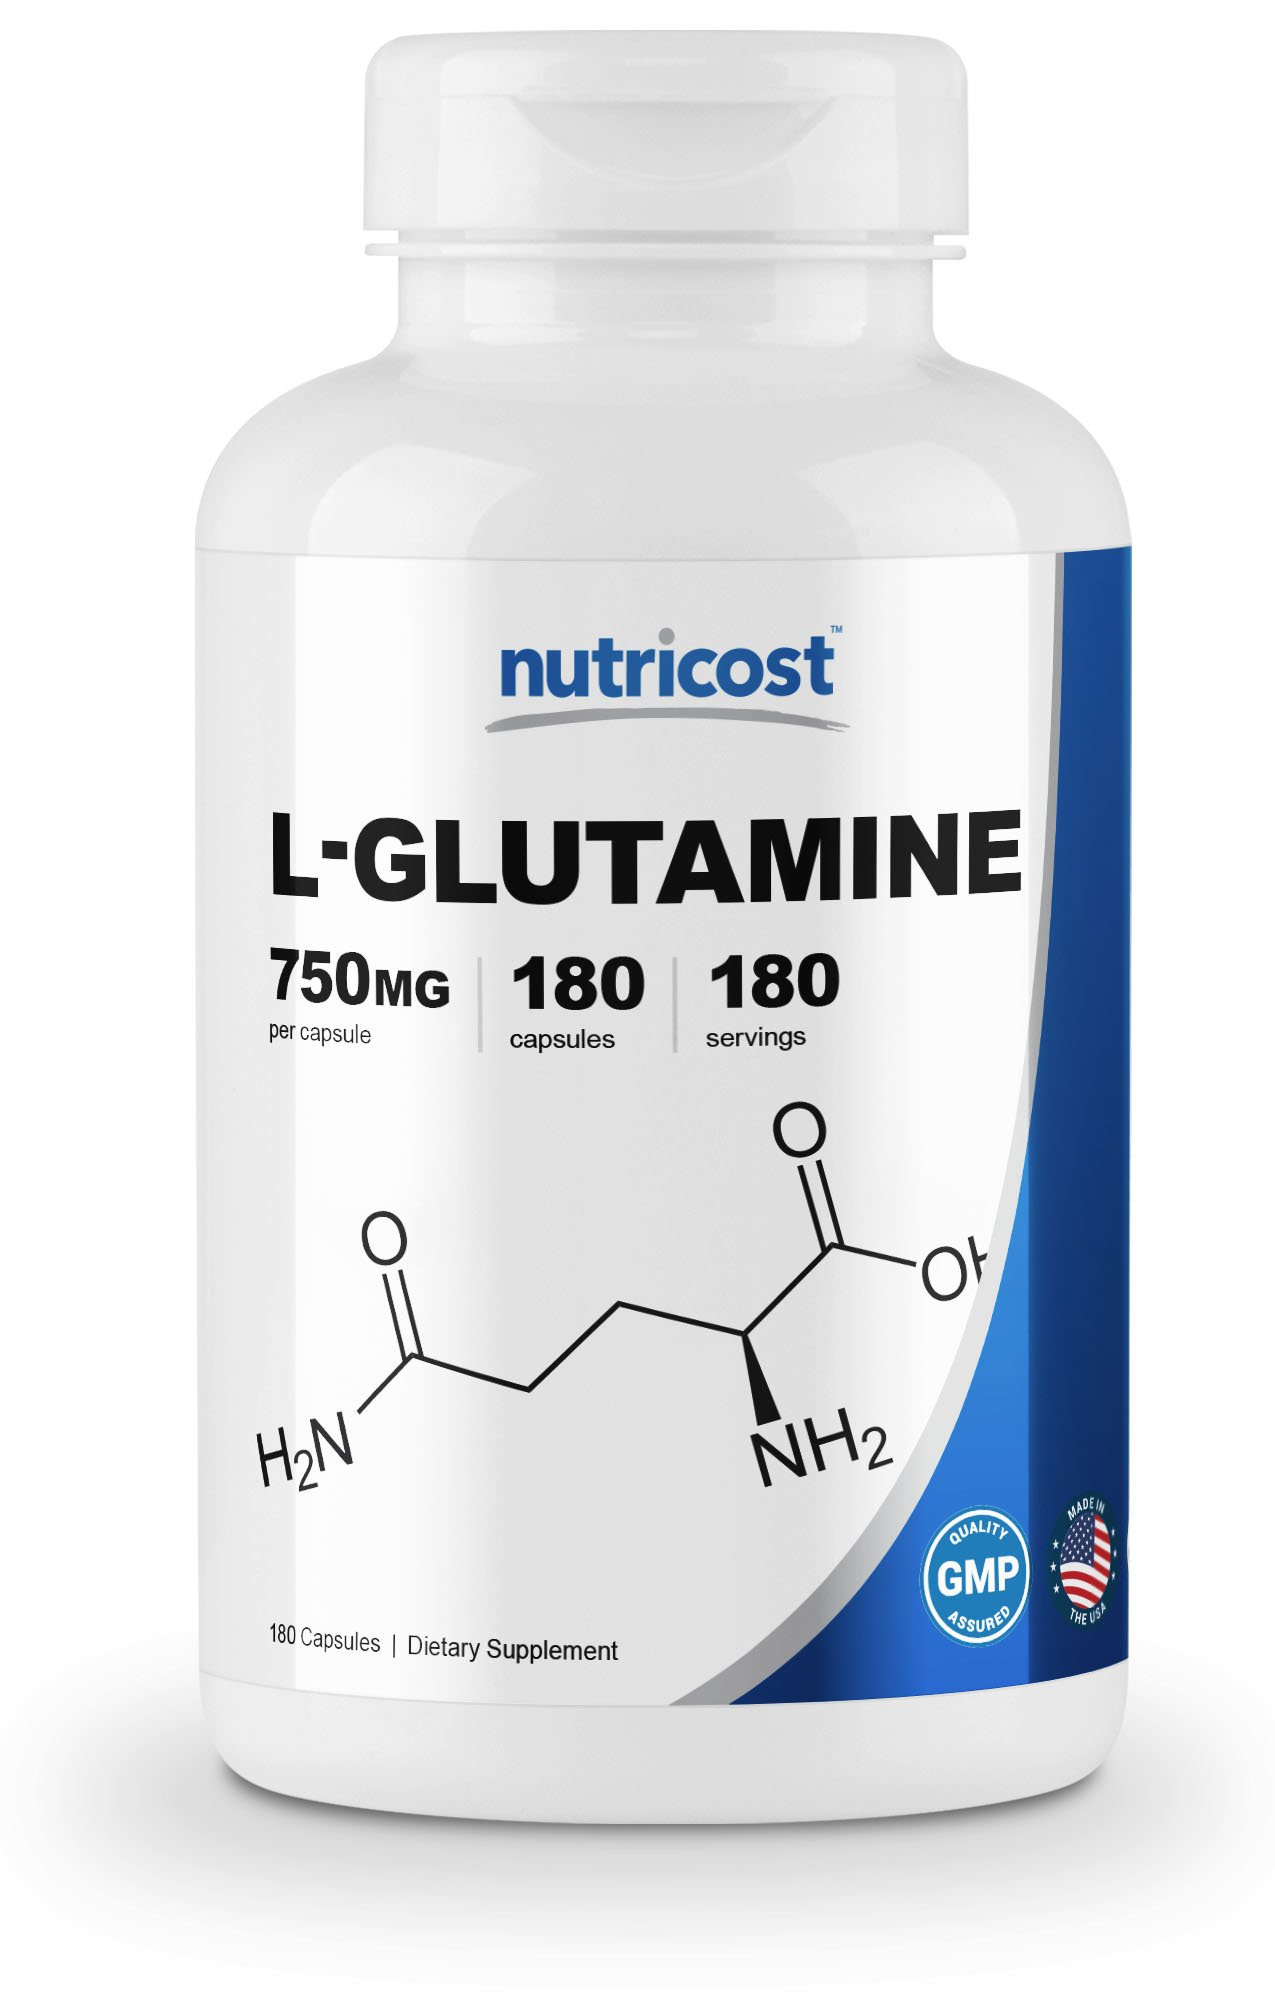 Nutricost L-Glutamine 750mg; 180 Capsules by Nutricost (Image #1)